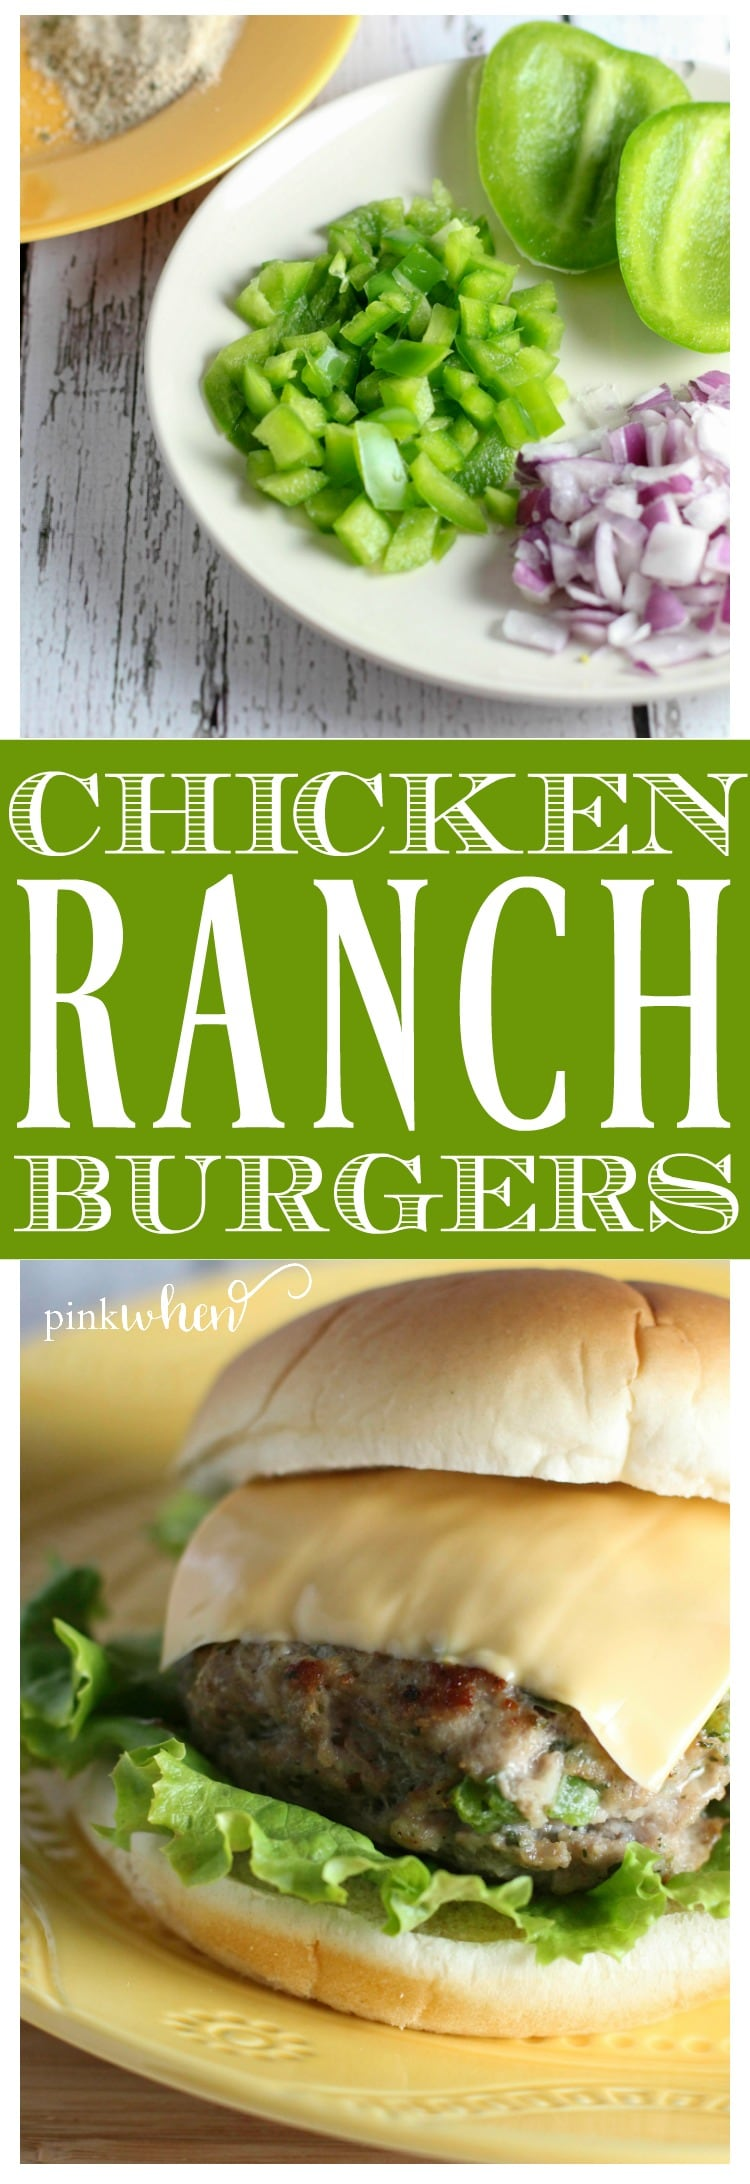 These Chicken Ranch Burgers are AMAZING. Read the secret to keep them from shrinking, and for keeping them moist!